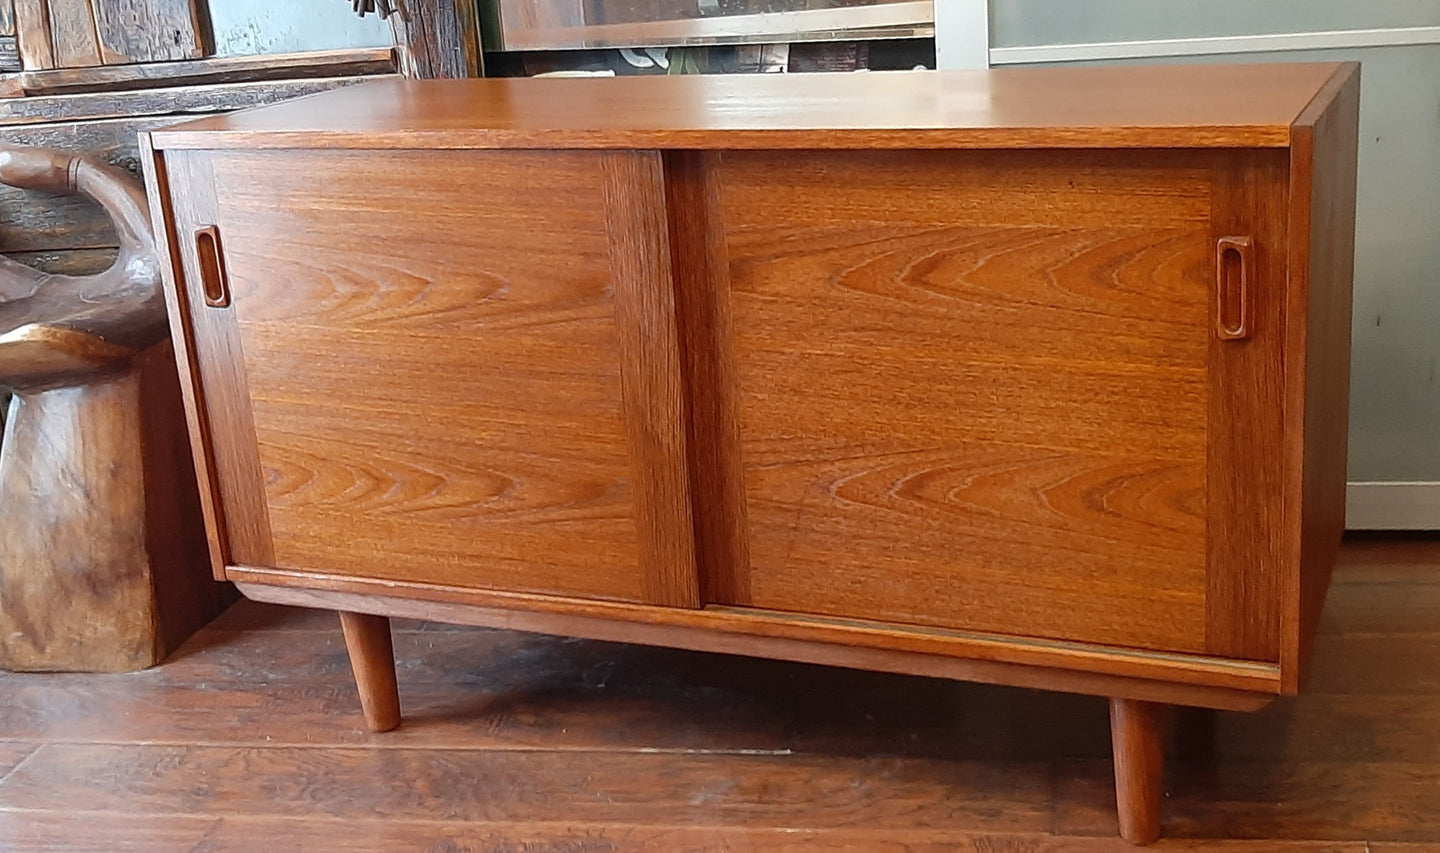 REFINISHED MCM Teak Sideboard Buffet 48.5